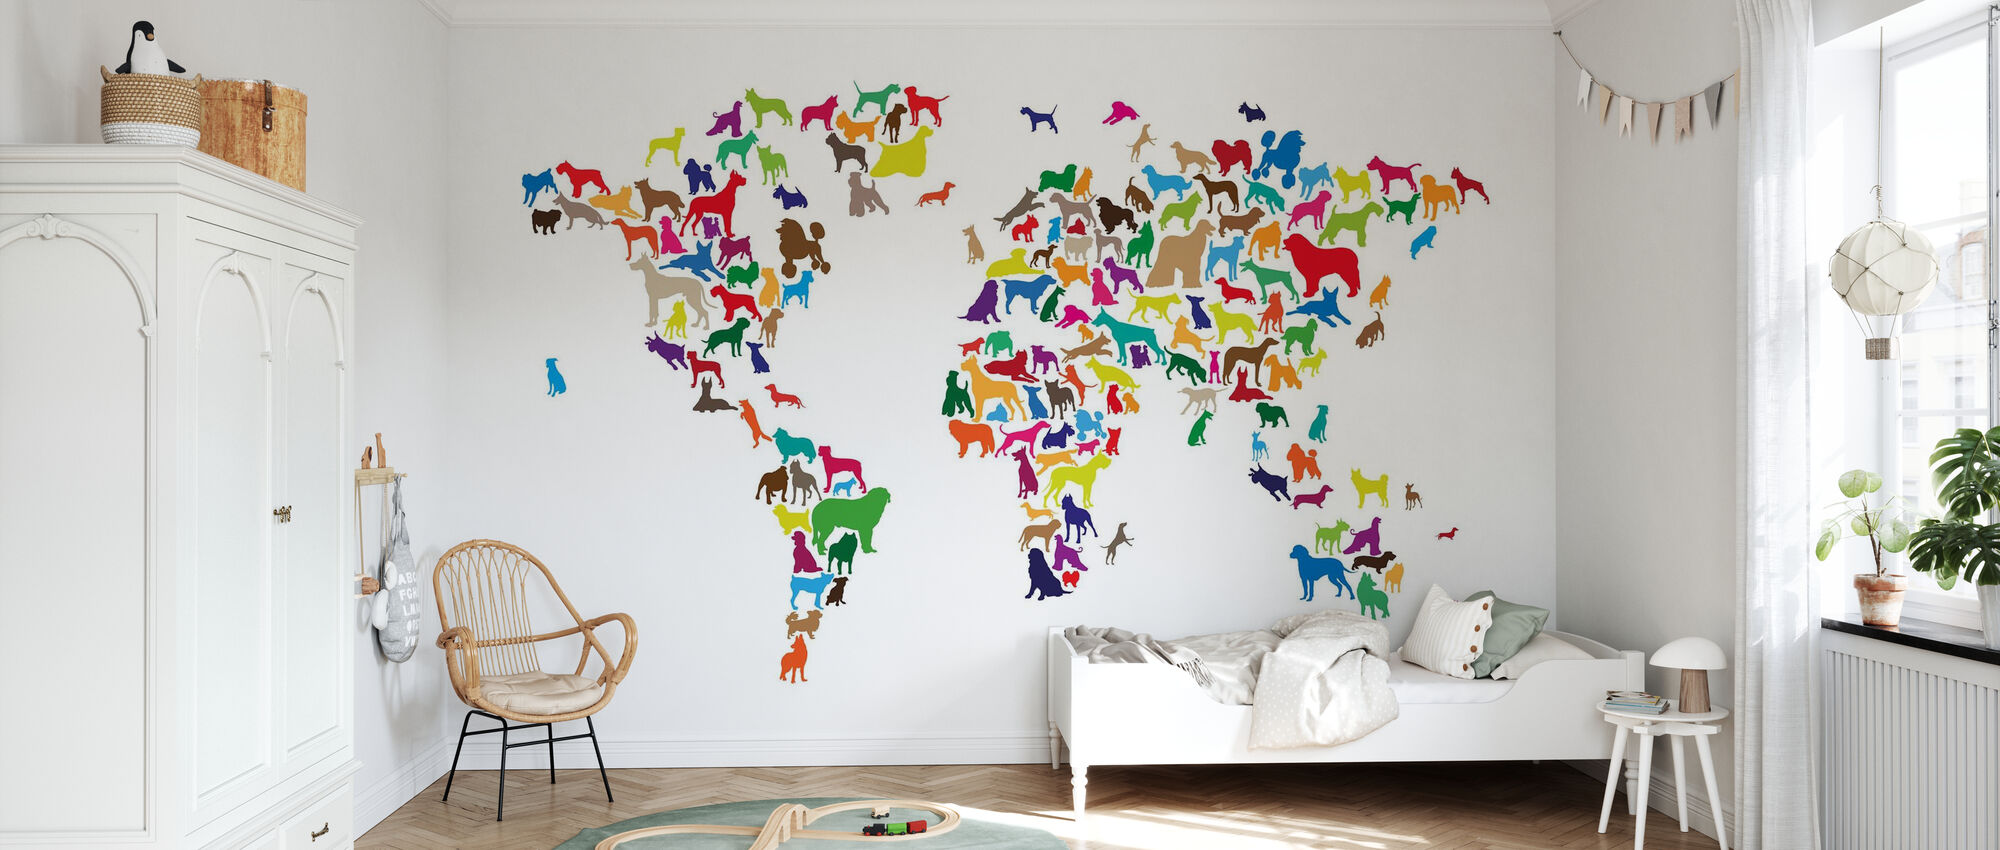 Dogs World Map Multicolor - Wallpaper - Kids Room